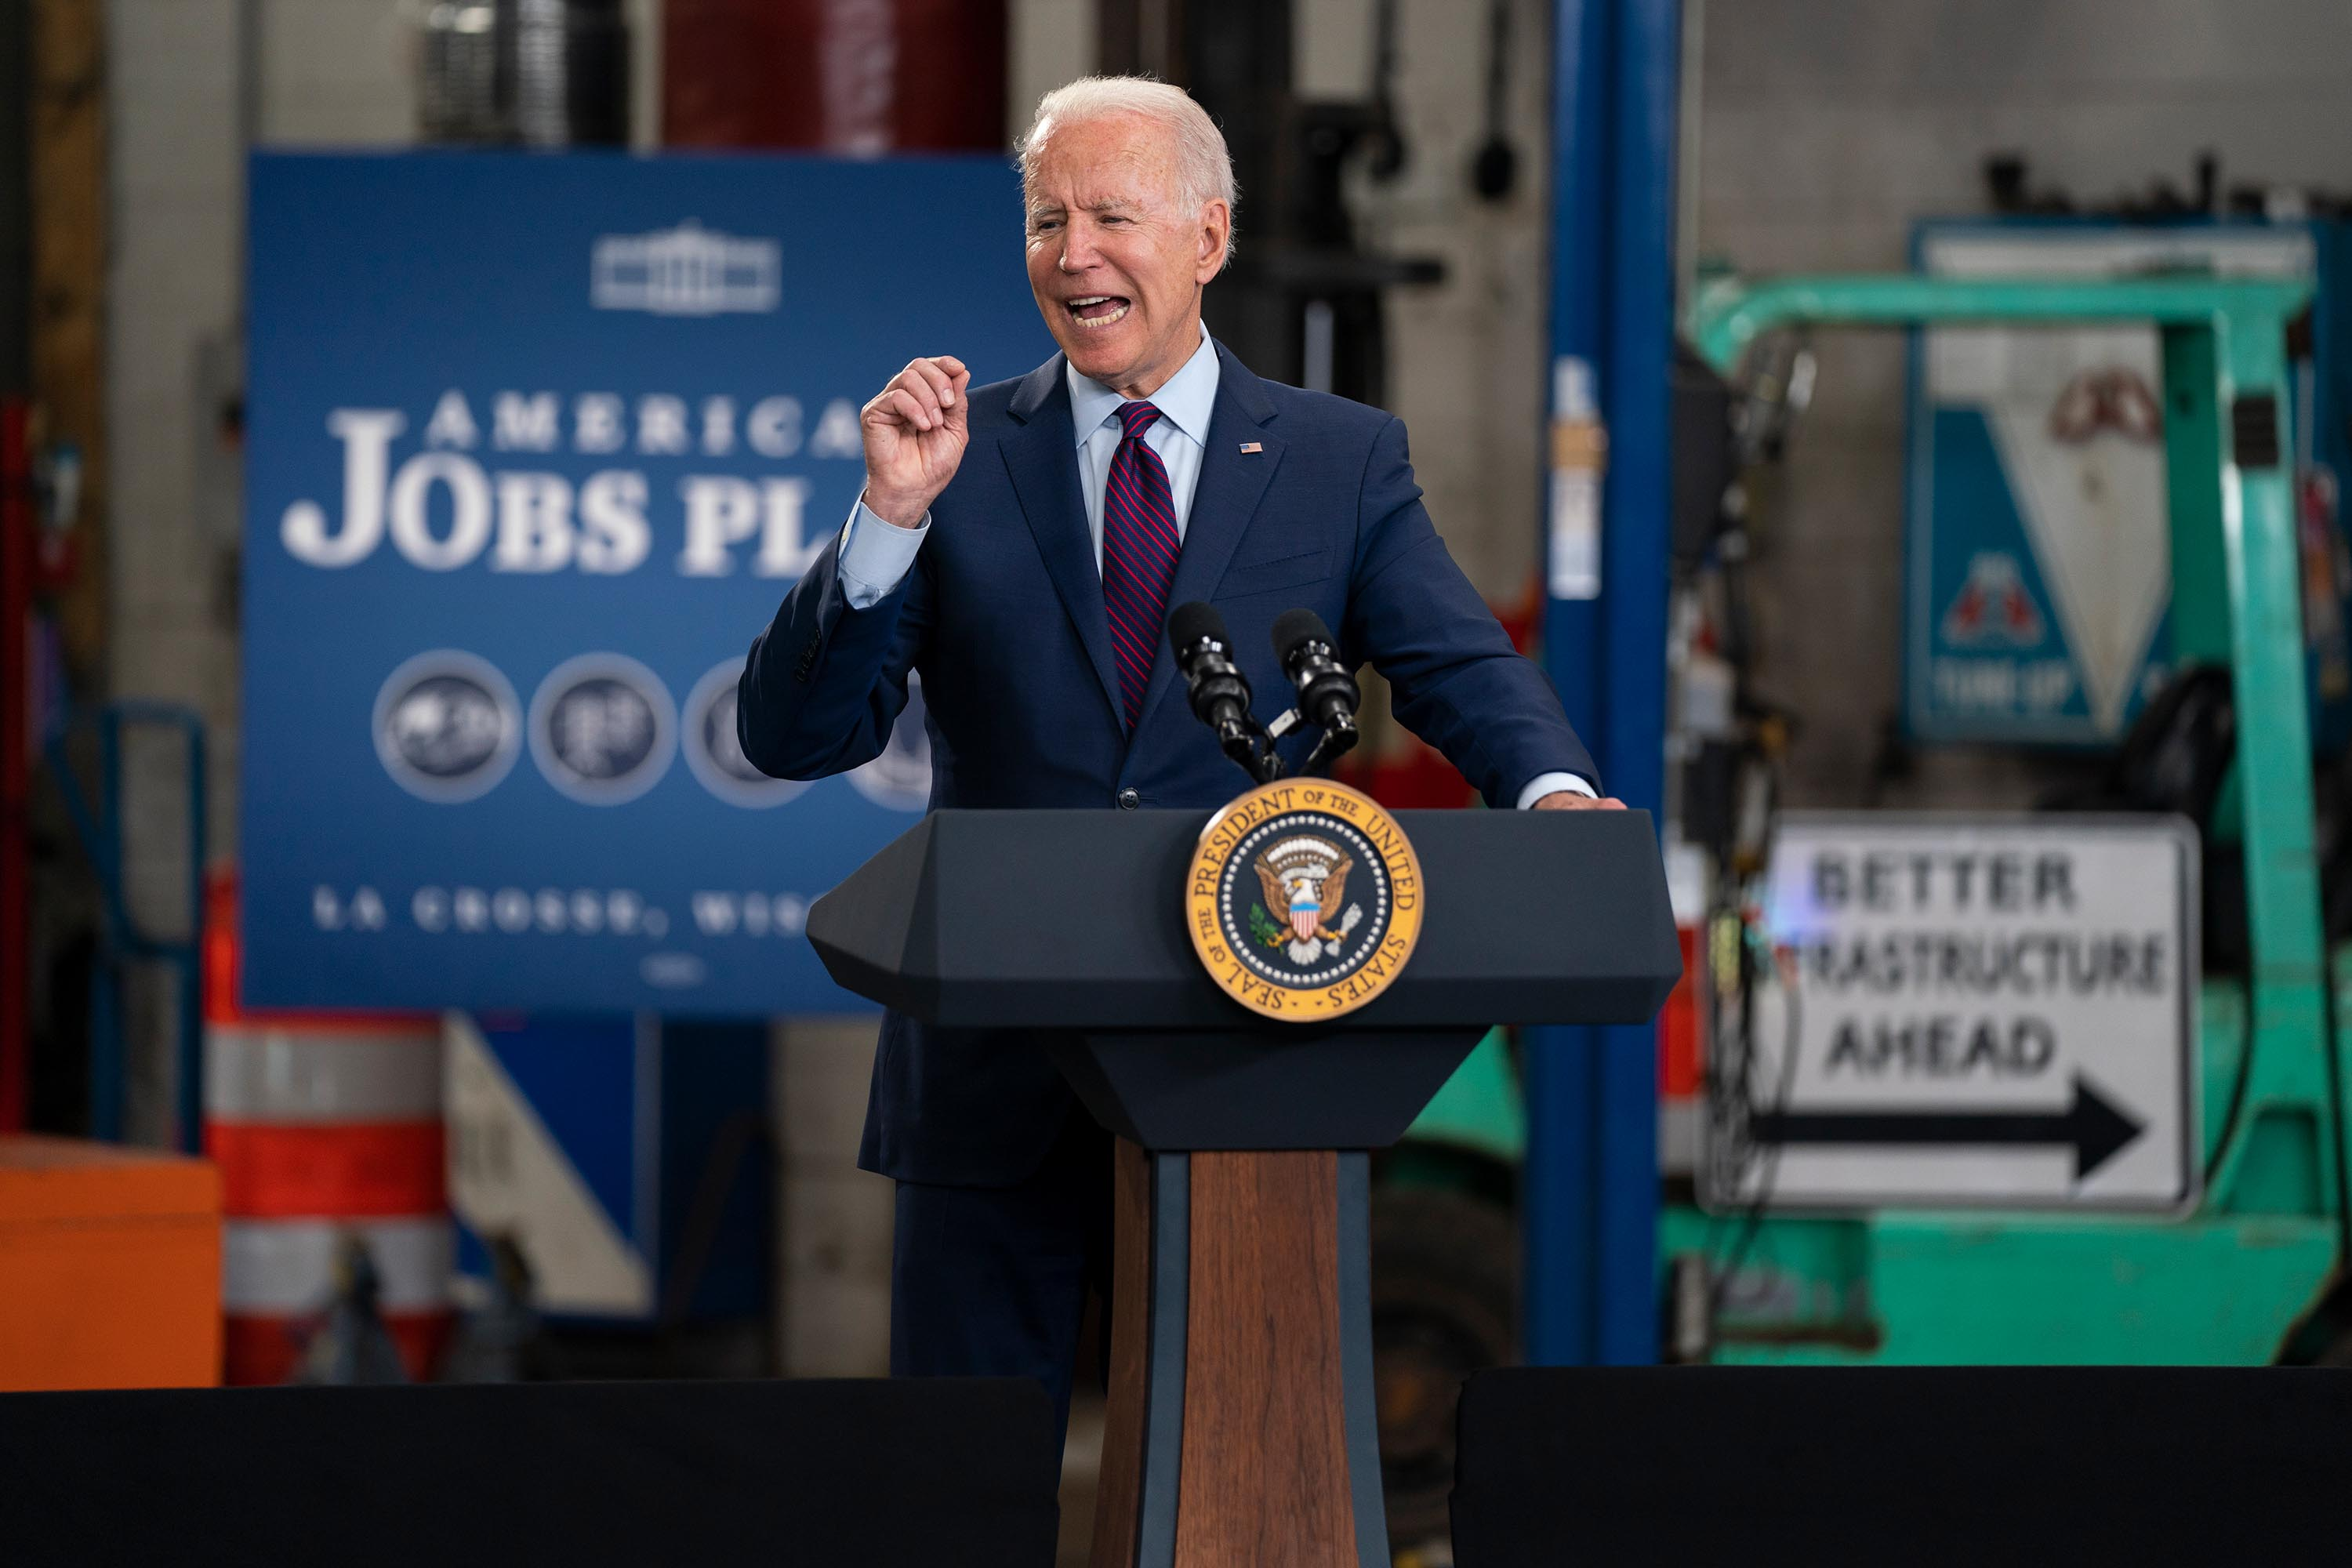 Biden announces 5th wave of judicial nominees as Democrats aim to maintain quick pace of confirmations to federal bench